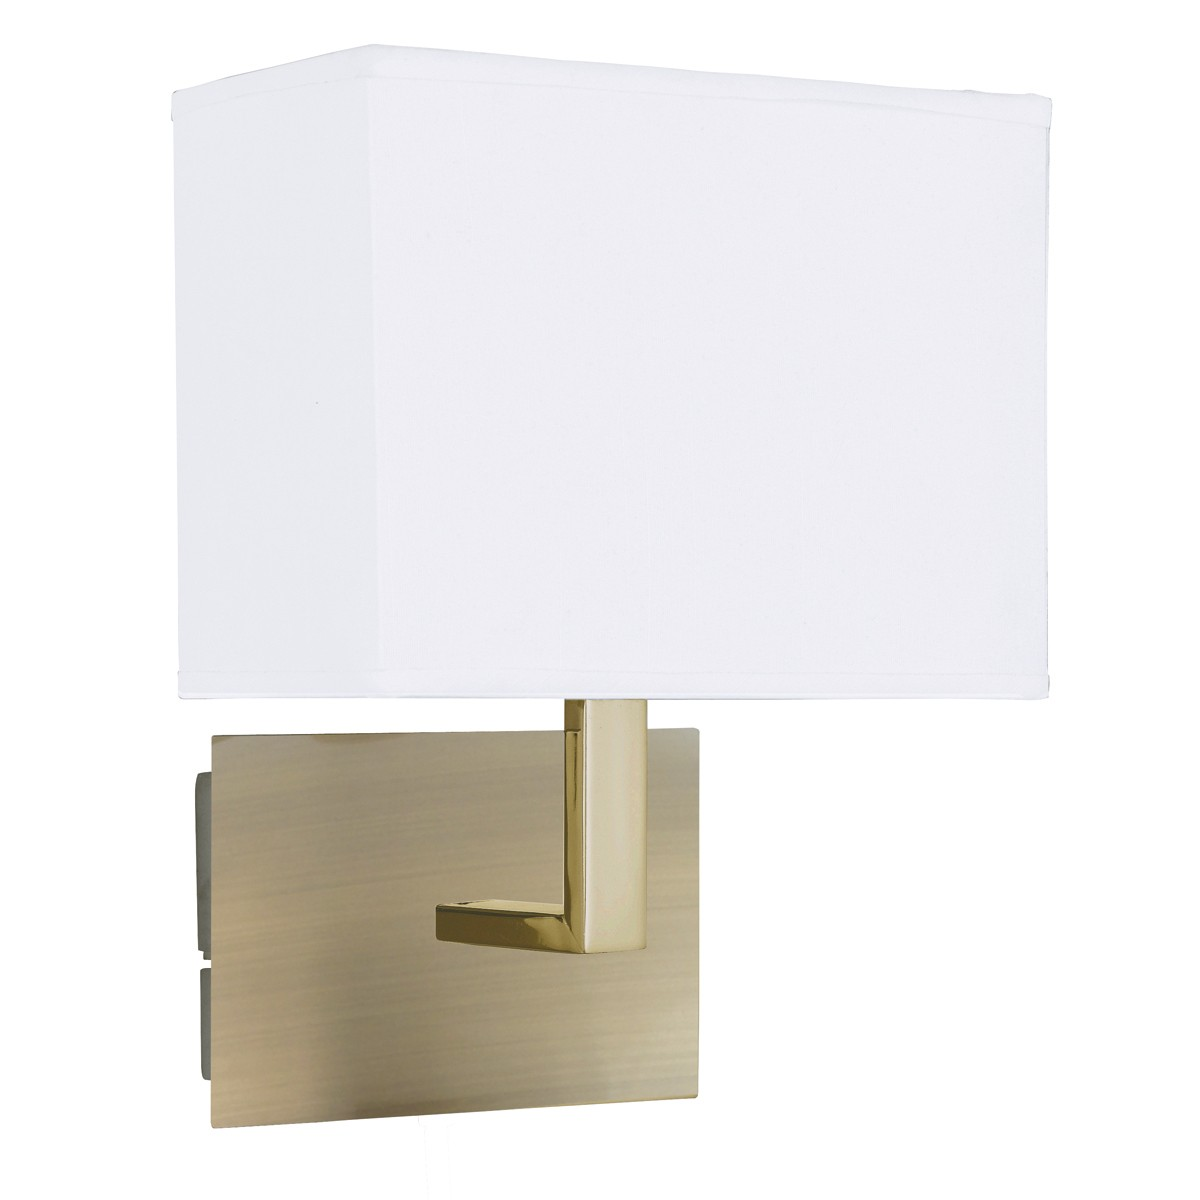 ANTIQUE BRASS WALL LIGHT WITH WHITE RECTANGULAR FABRIC SHADE 5519AB Stanways Stoves and Lights